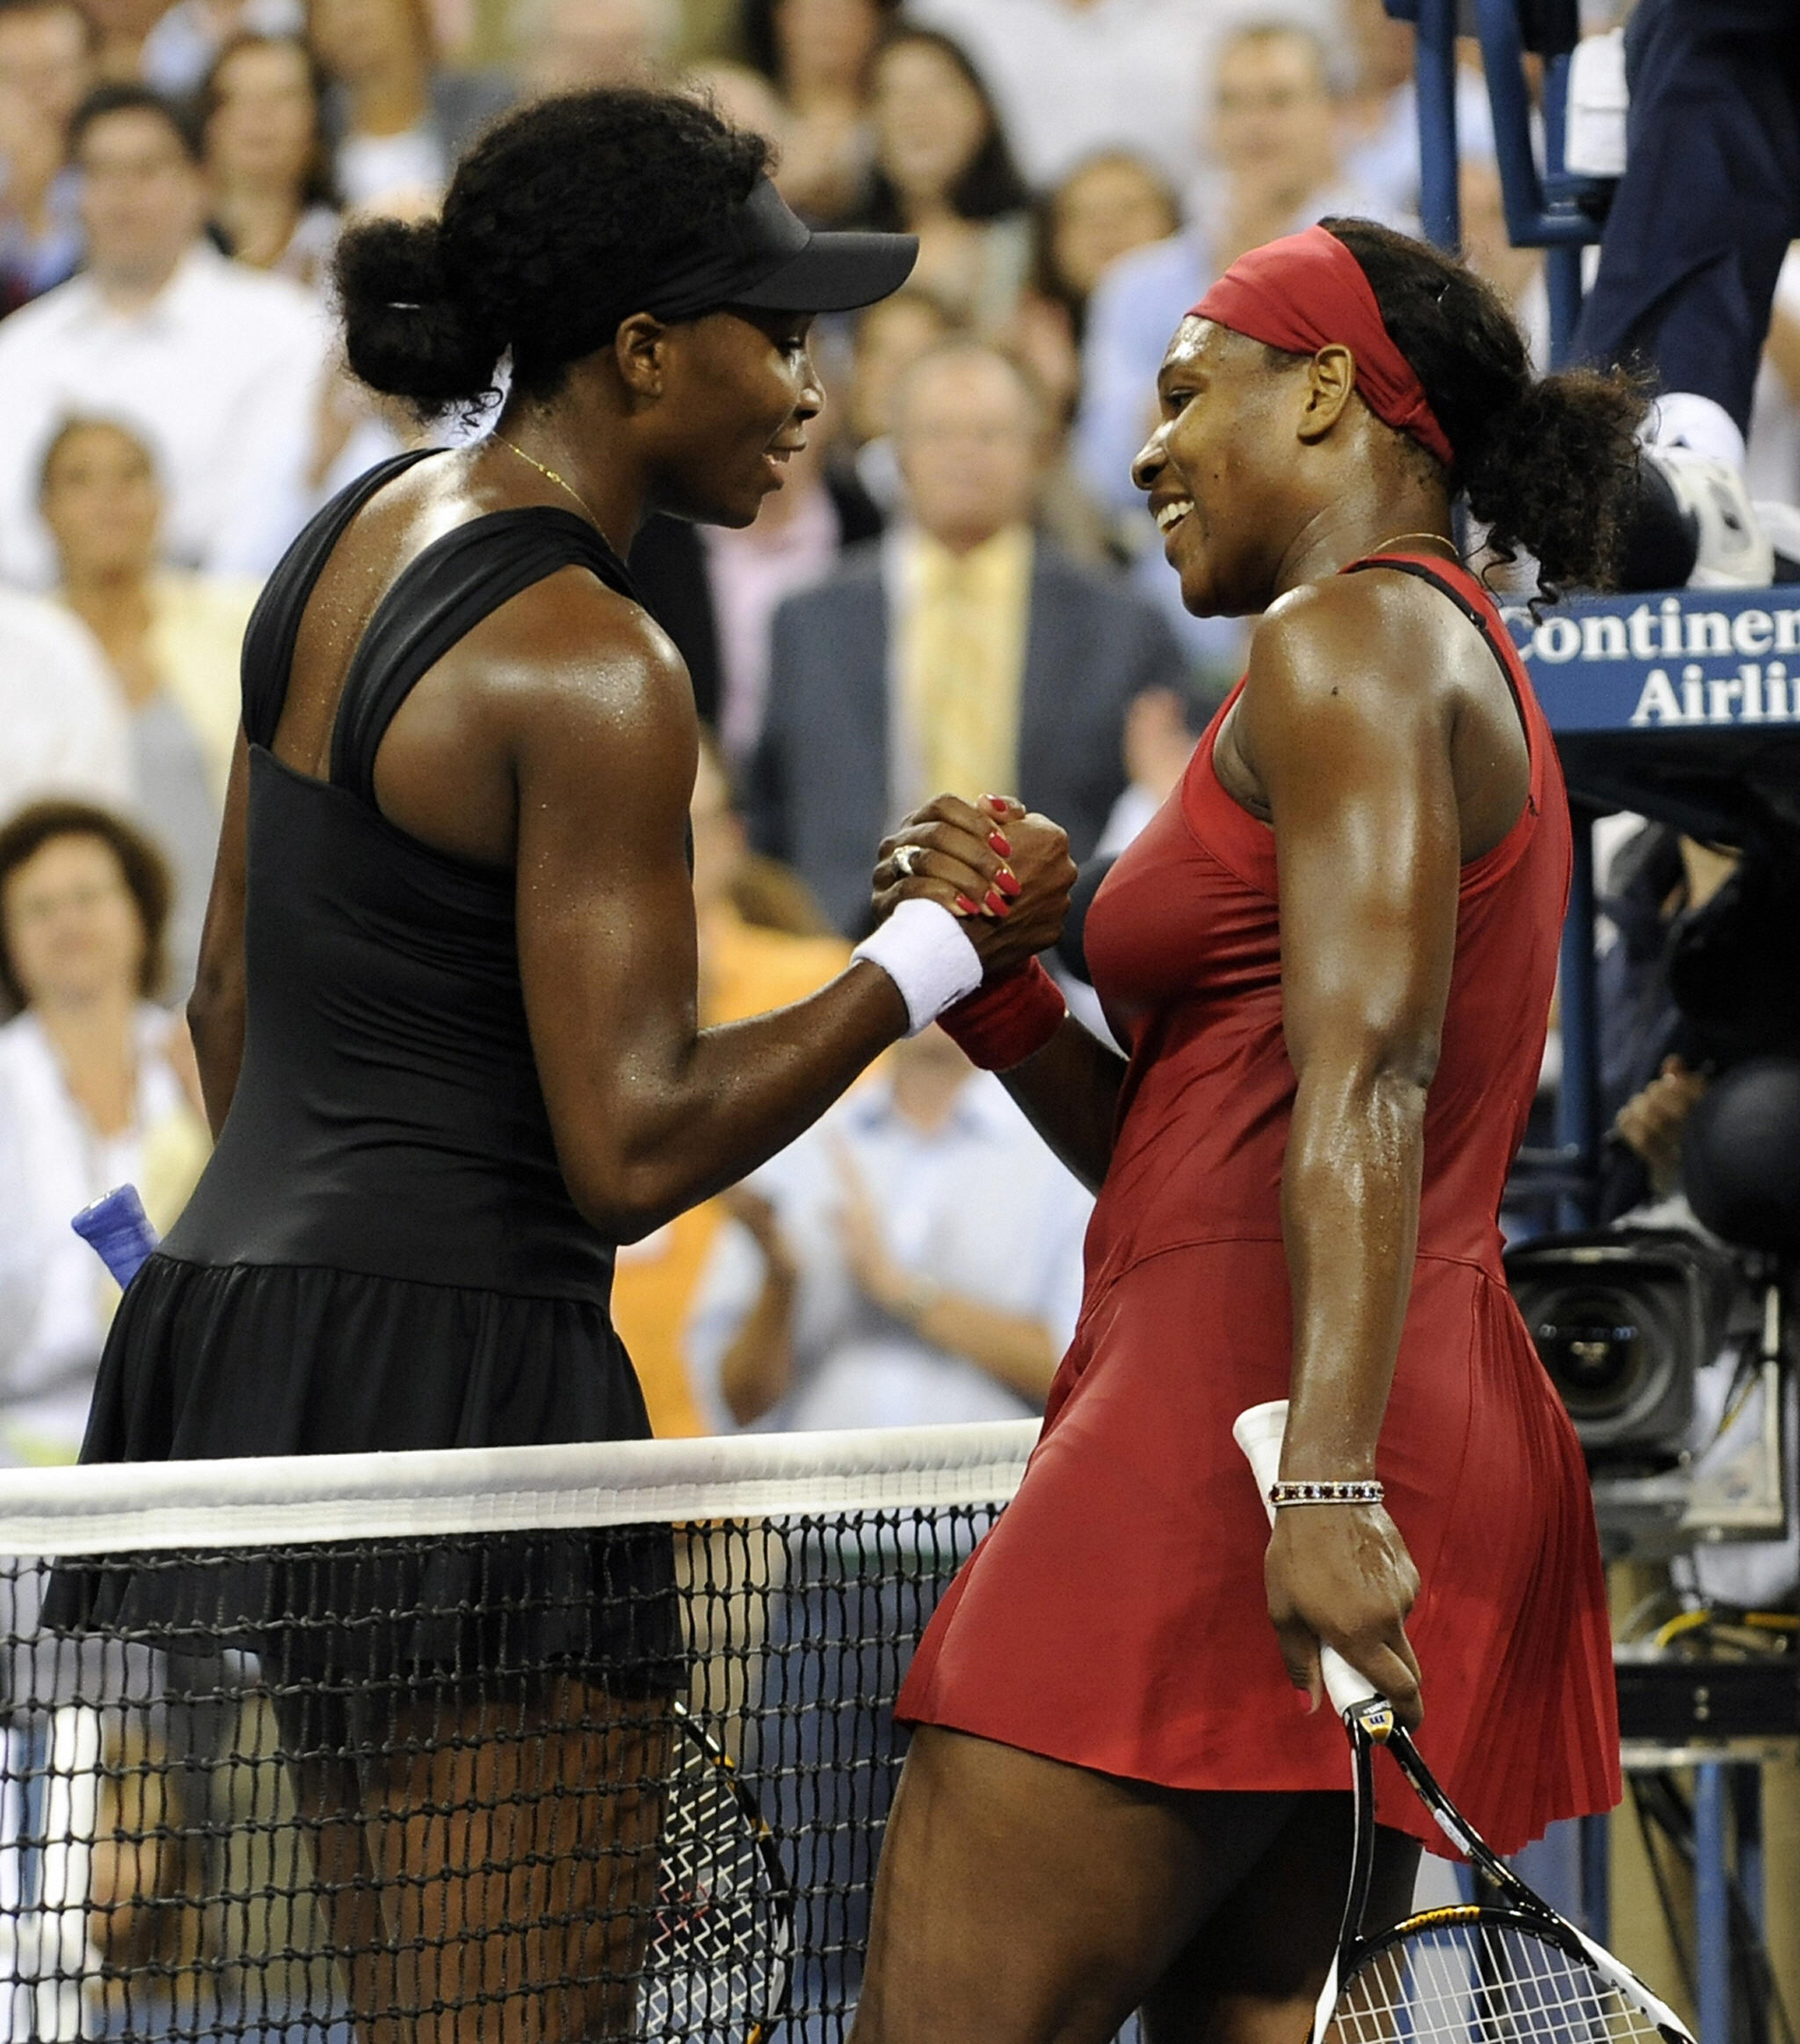 Serena Williams (R) of the United States (4) after winning during her quarterfinal match against Venus Williams of the United States (7) at the US Open tennis tournament on September 3, 2008 at the USTA National Tennis Center in New York City.